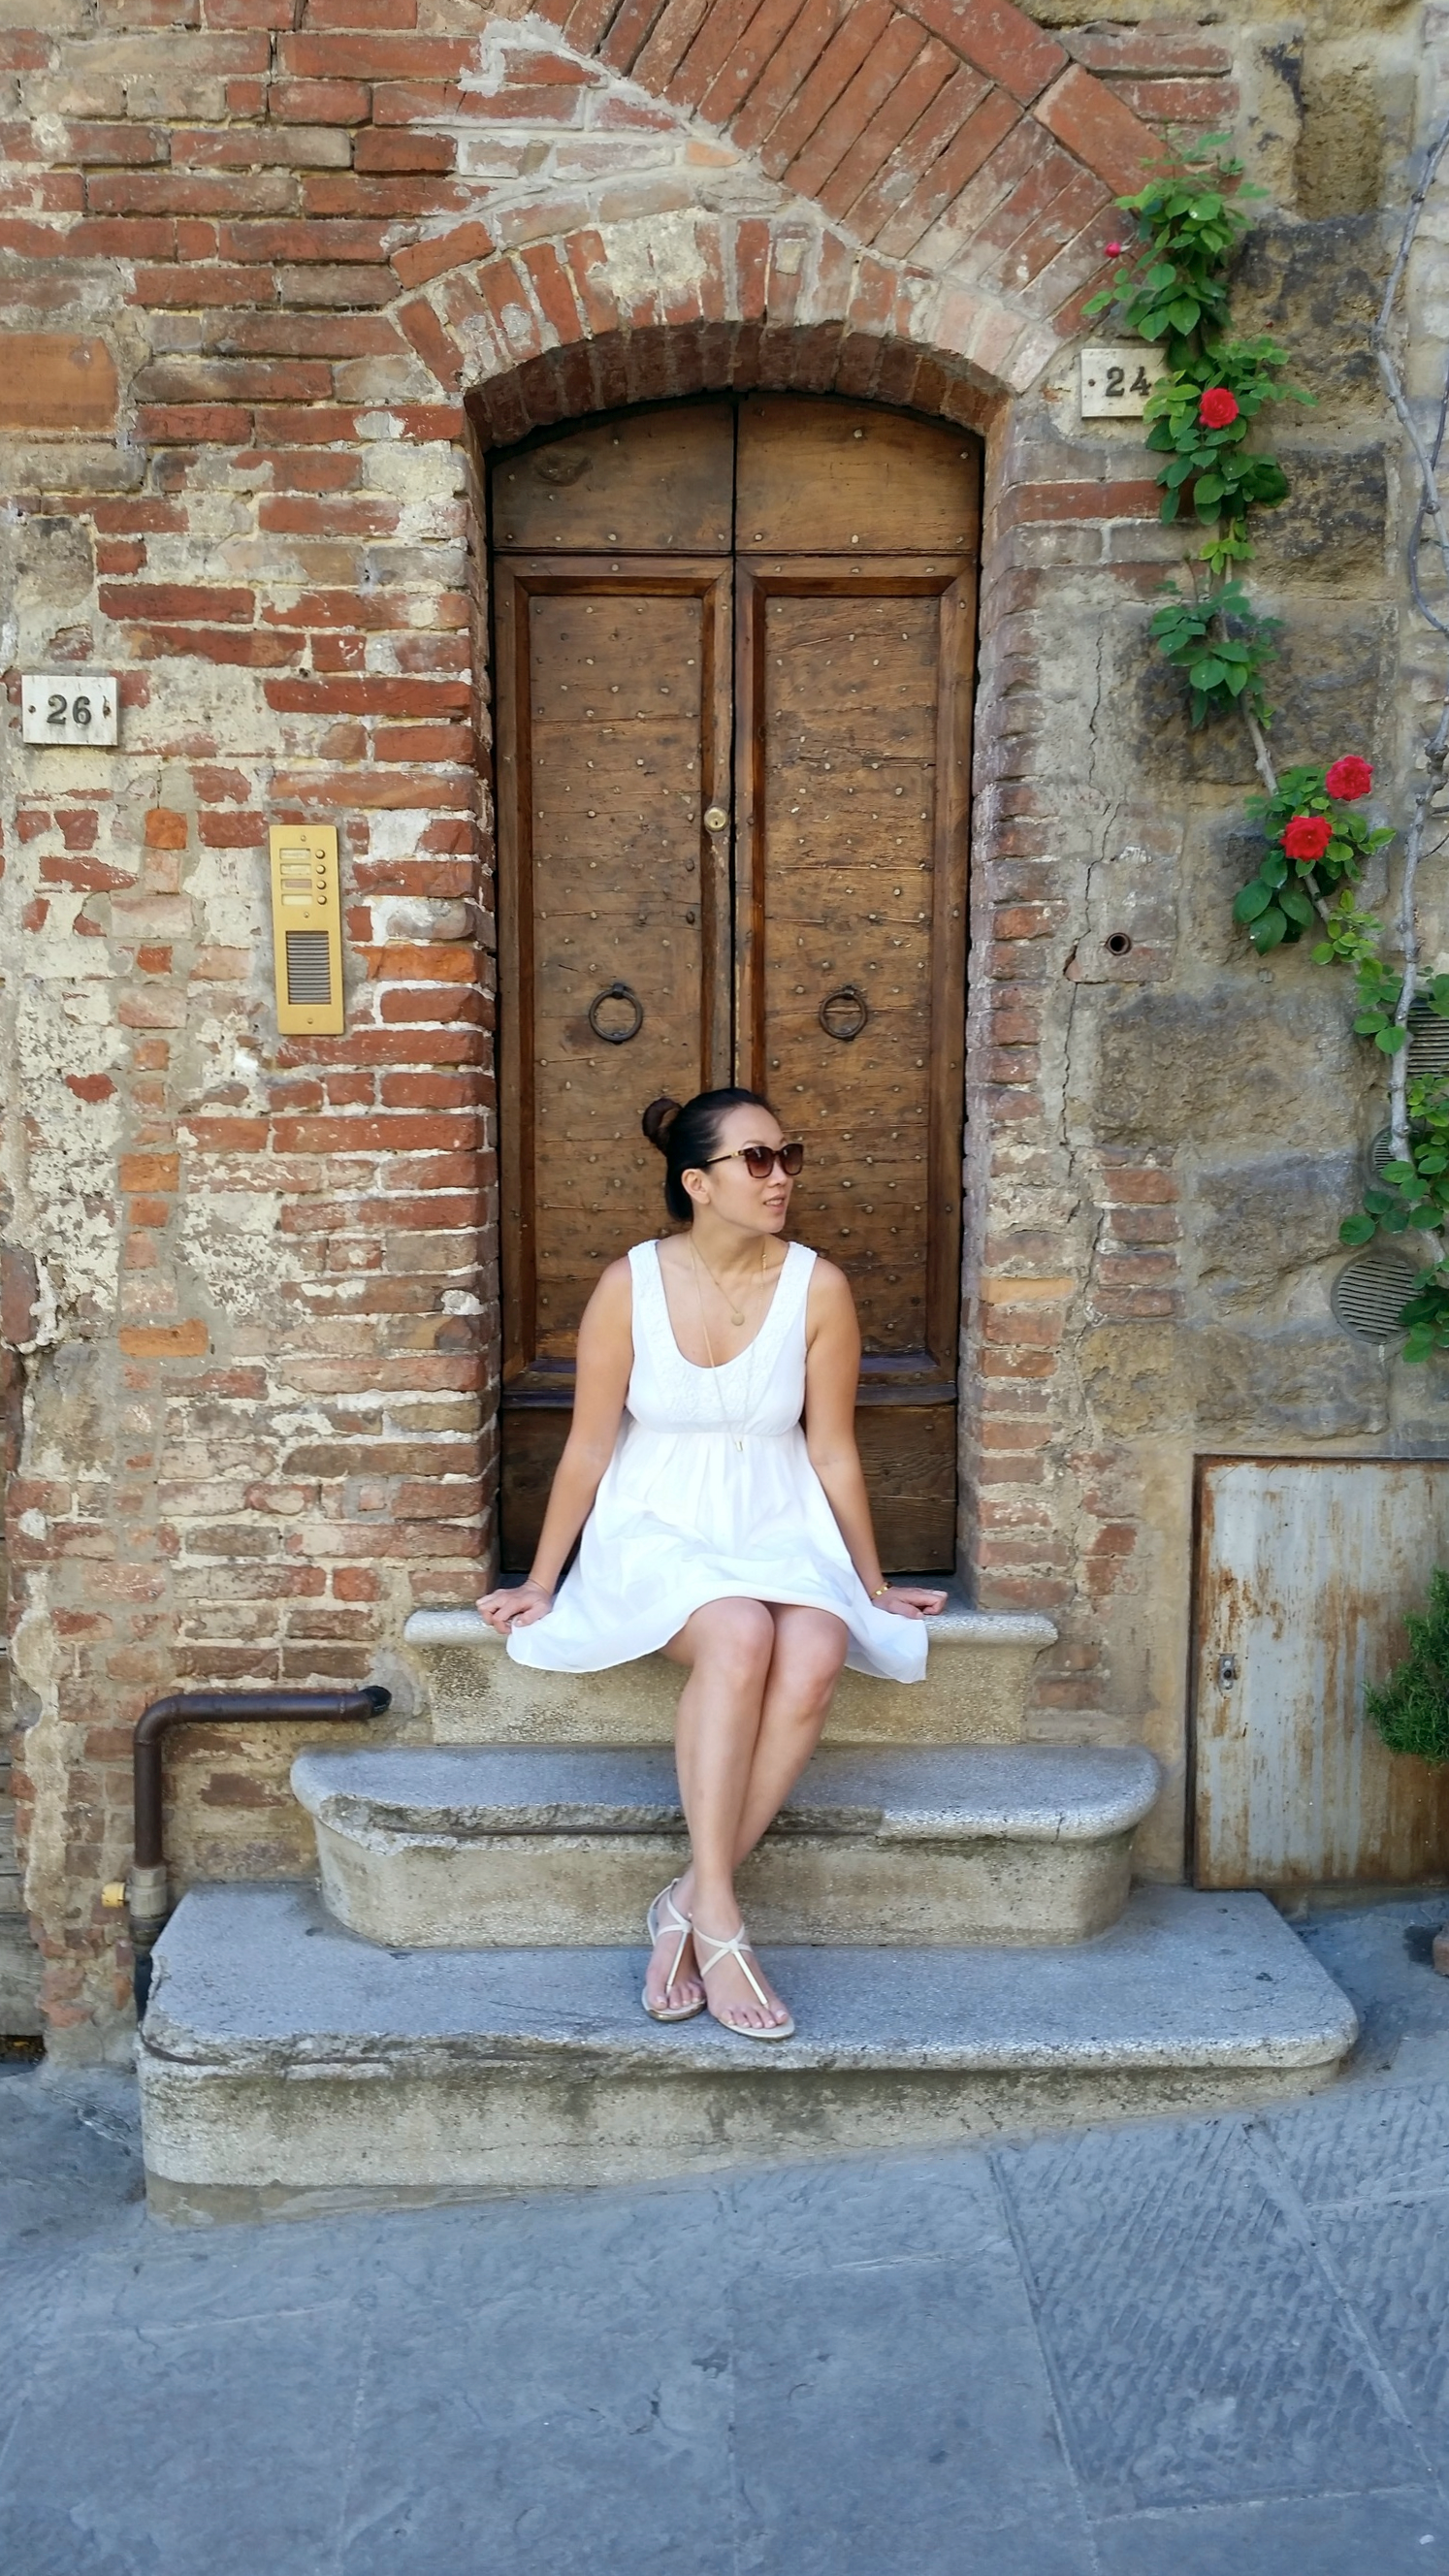 PIENZA, ITALY  Waiting for a table of some serious Tuscan grandmother cooking in Pienza